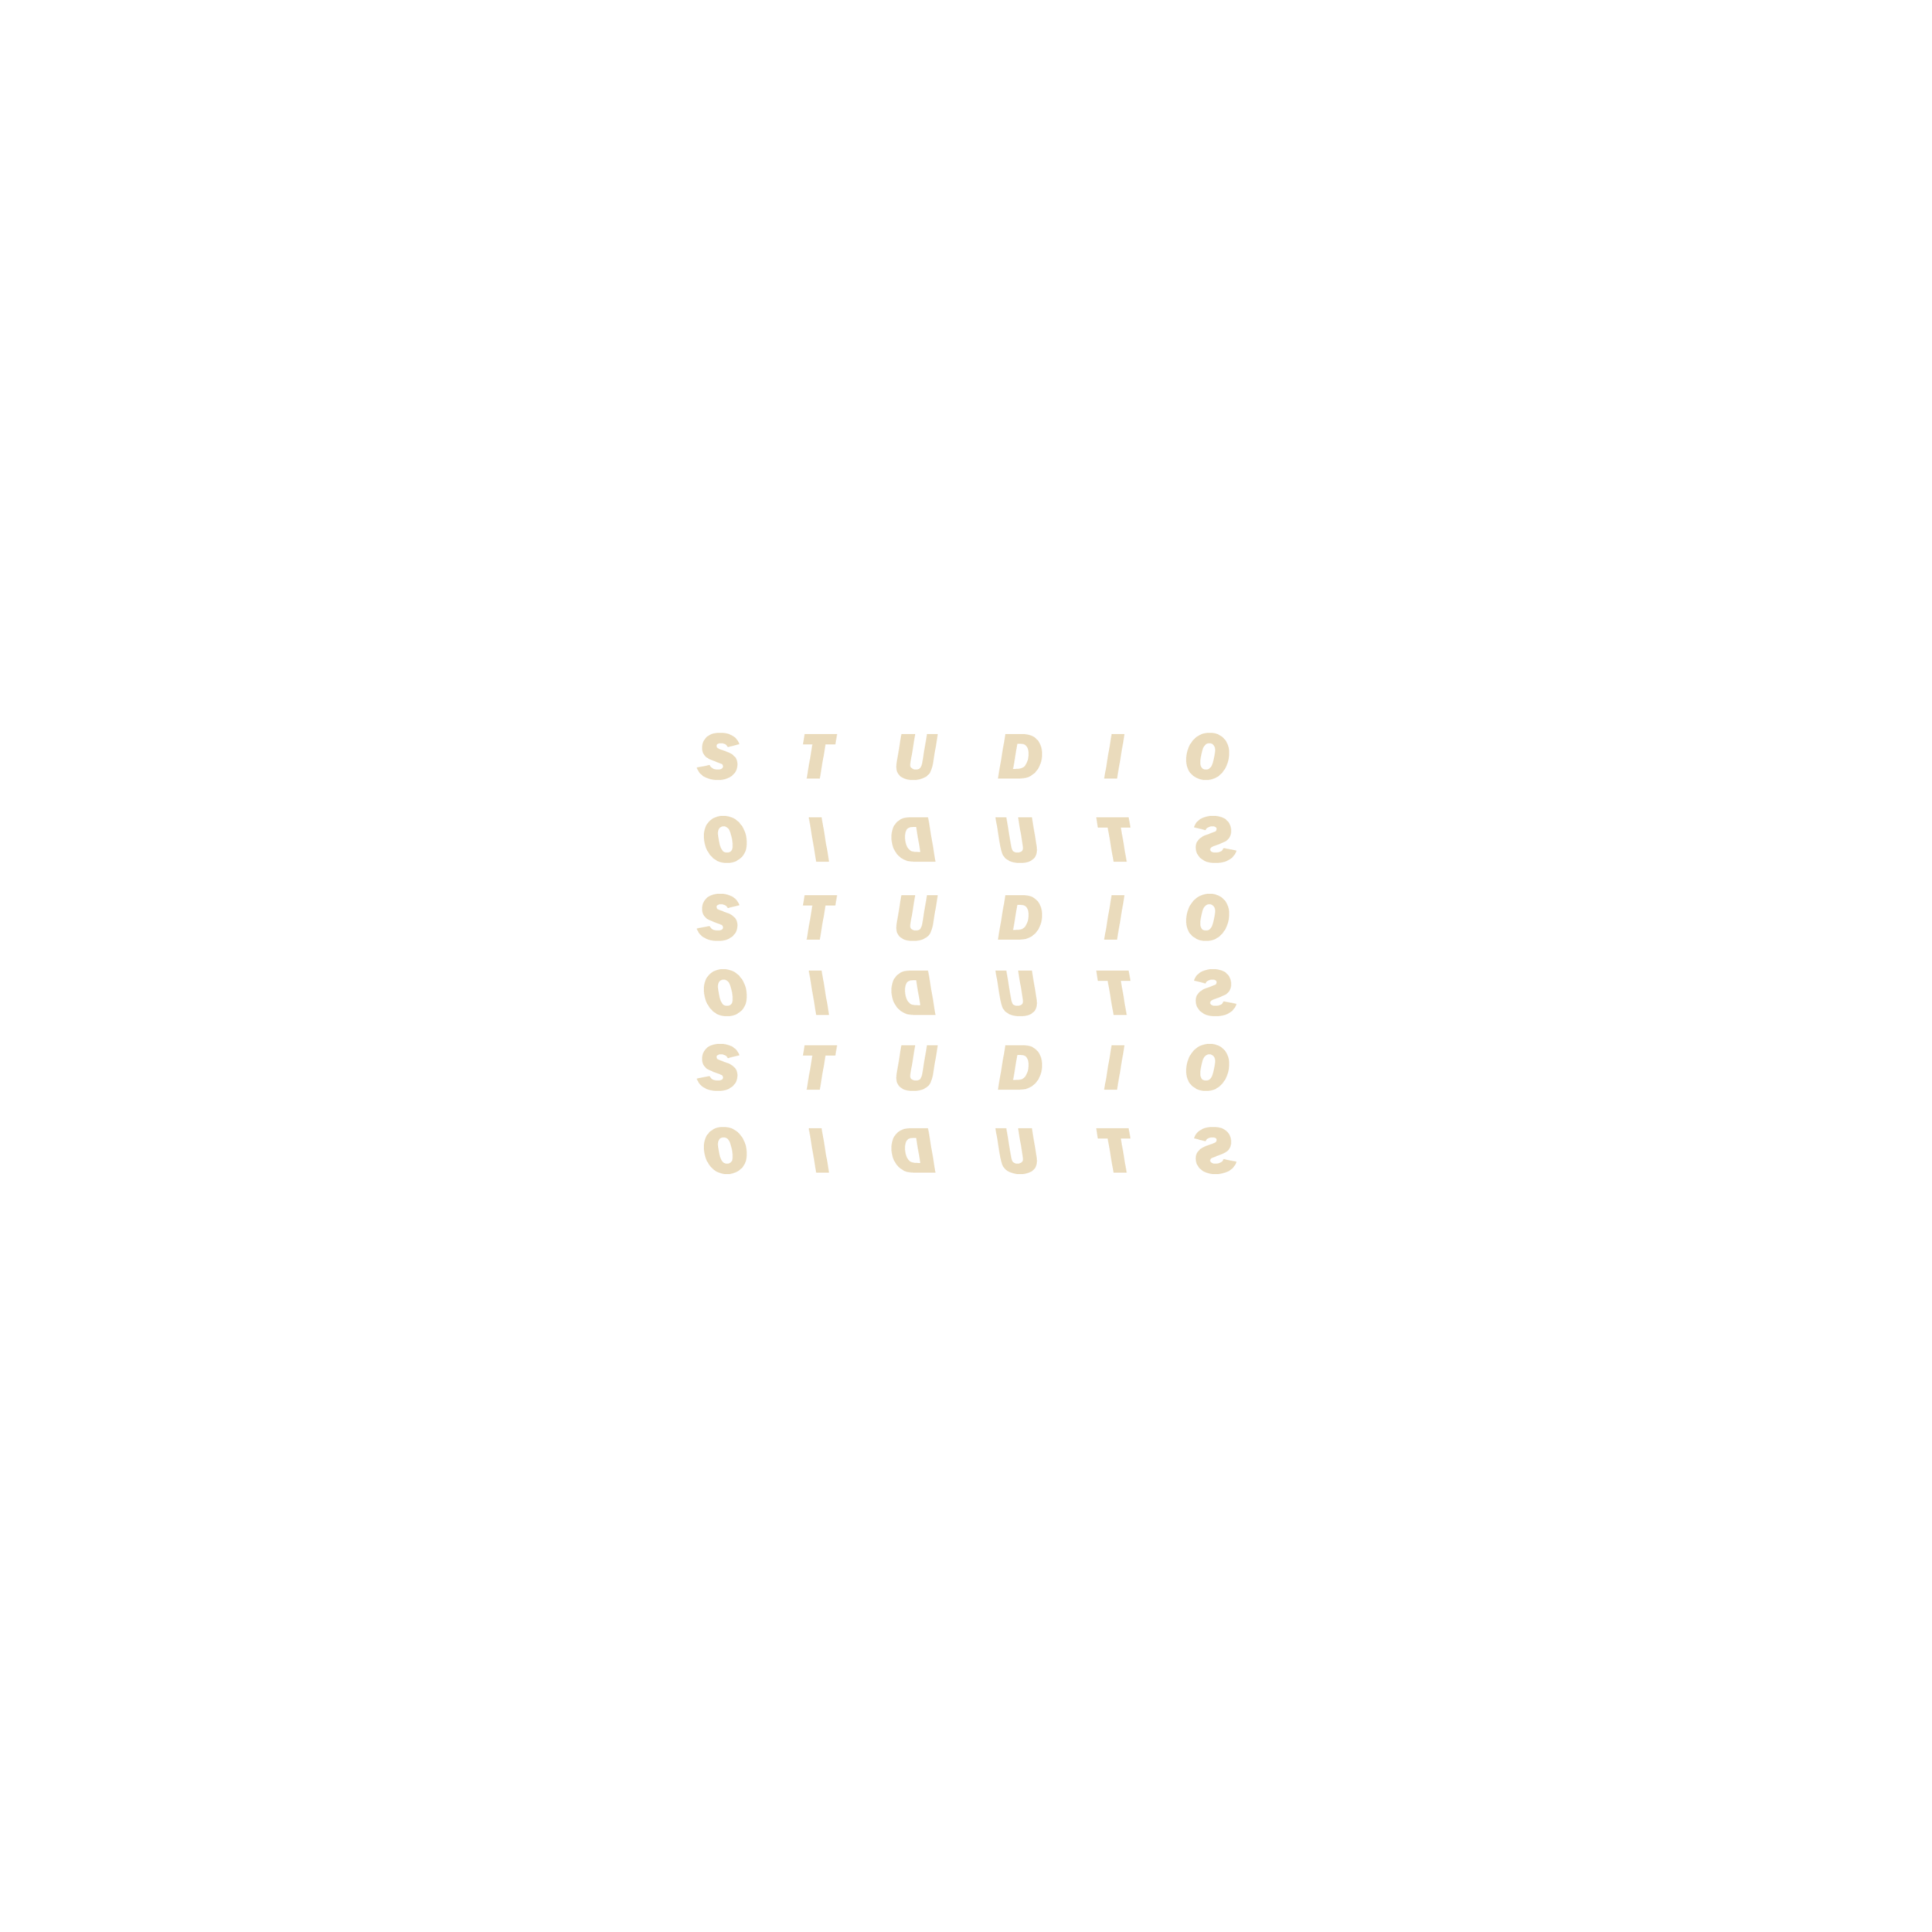 stupo letters.png